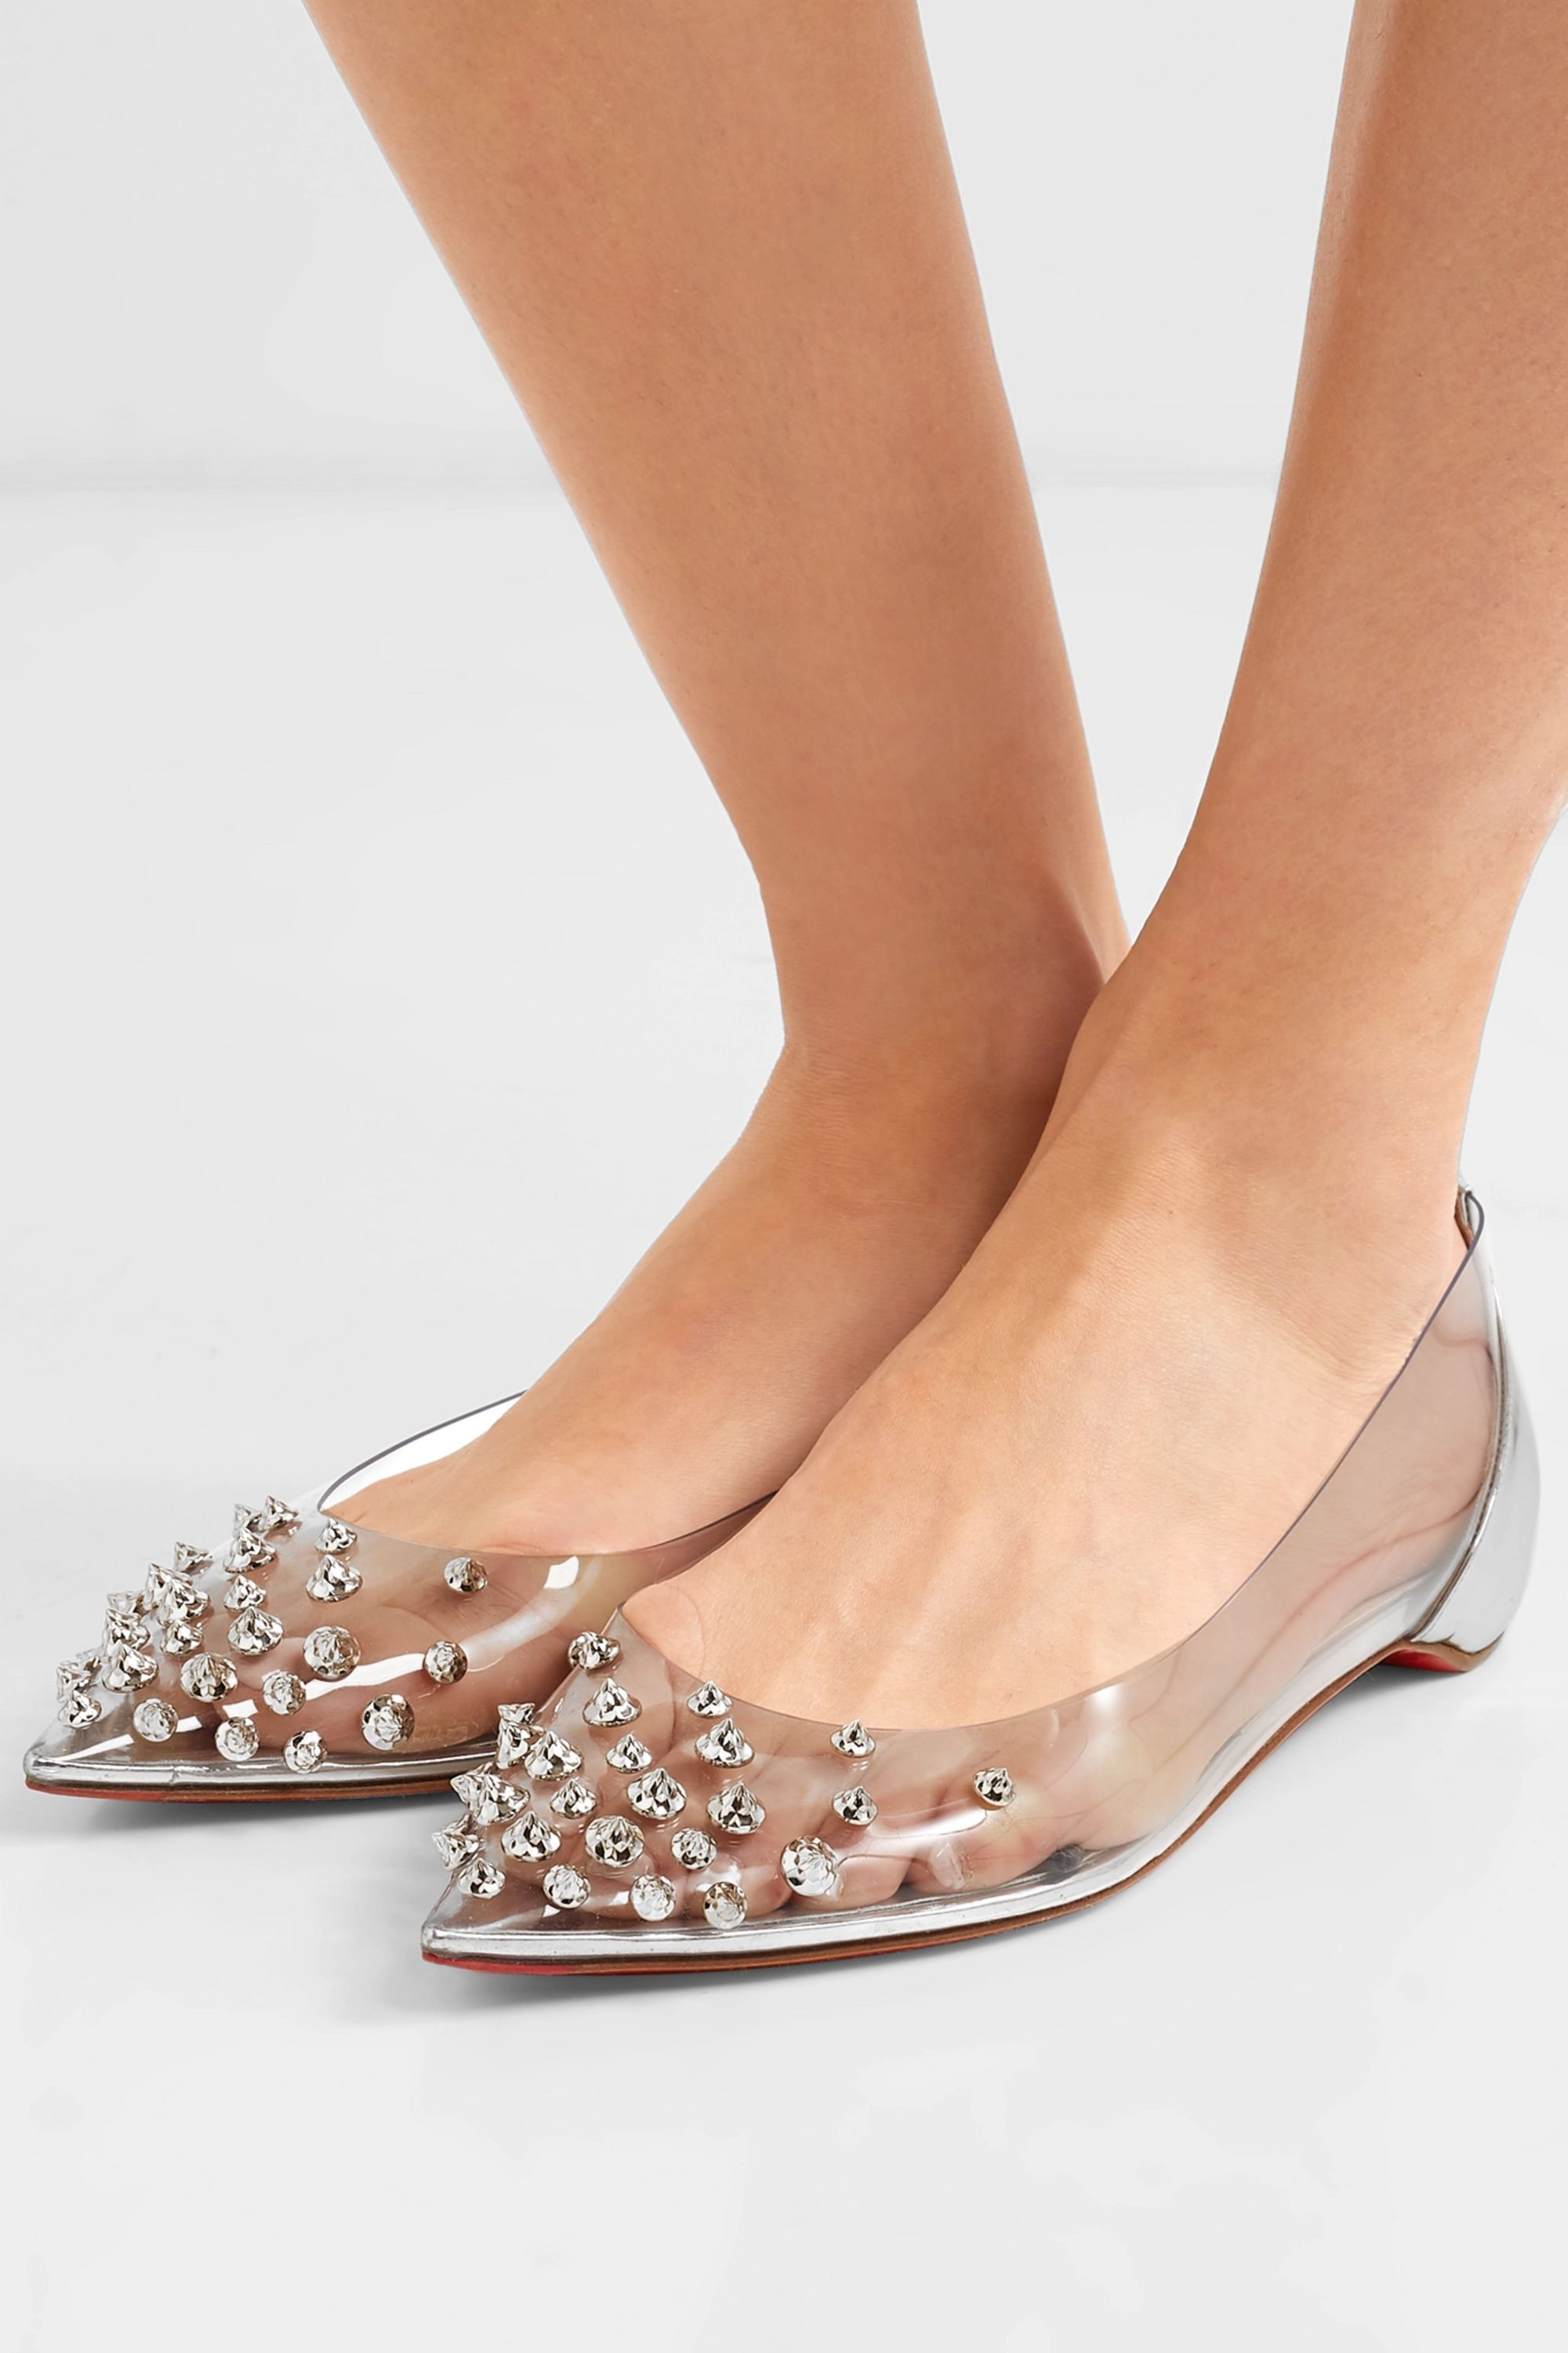 Silver Collaclou spiked PVC and